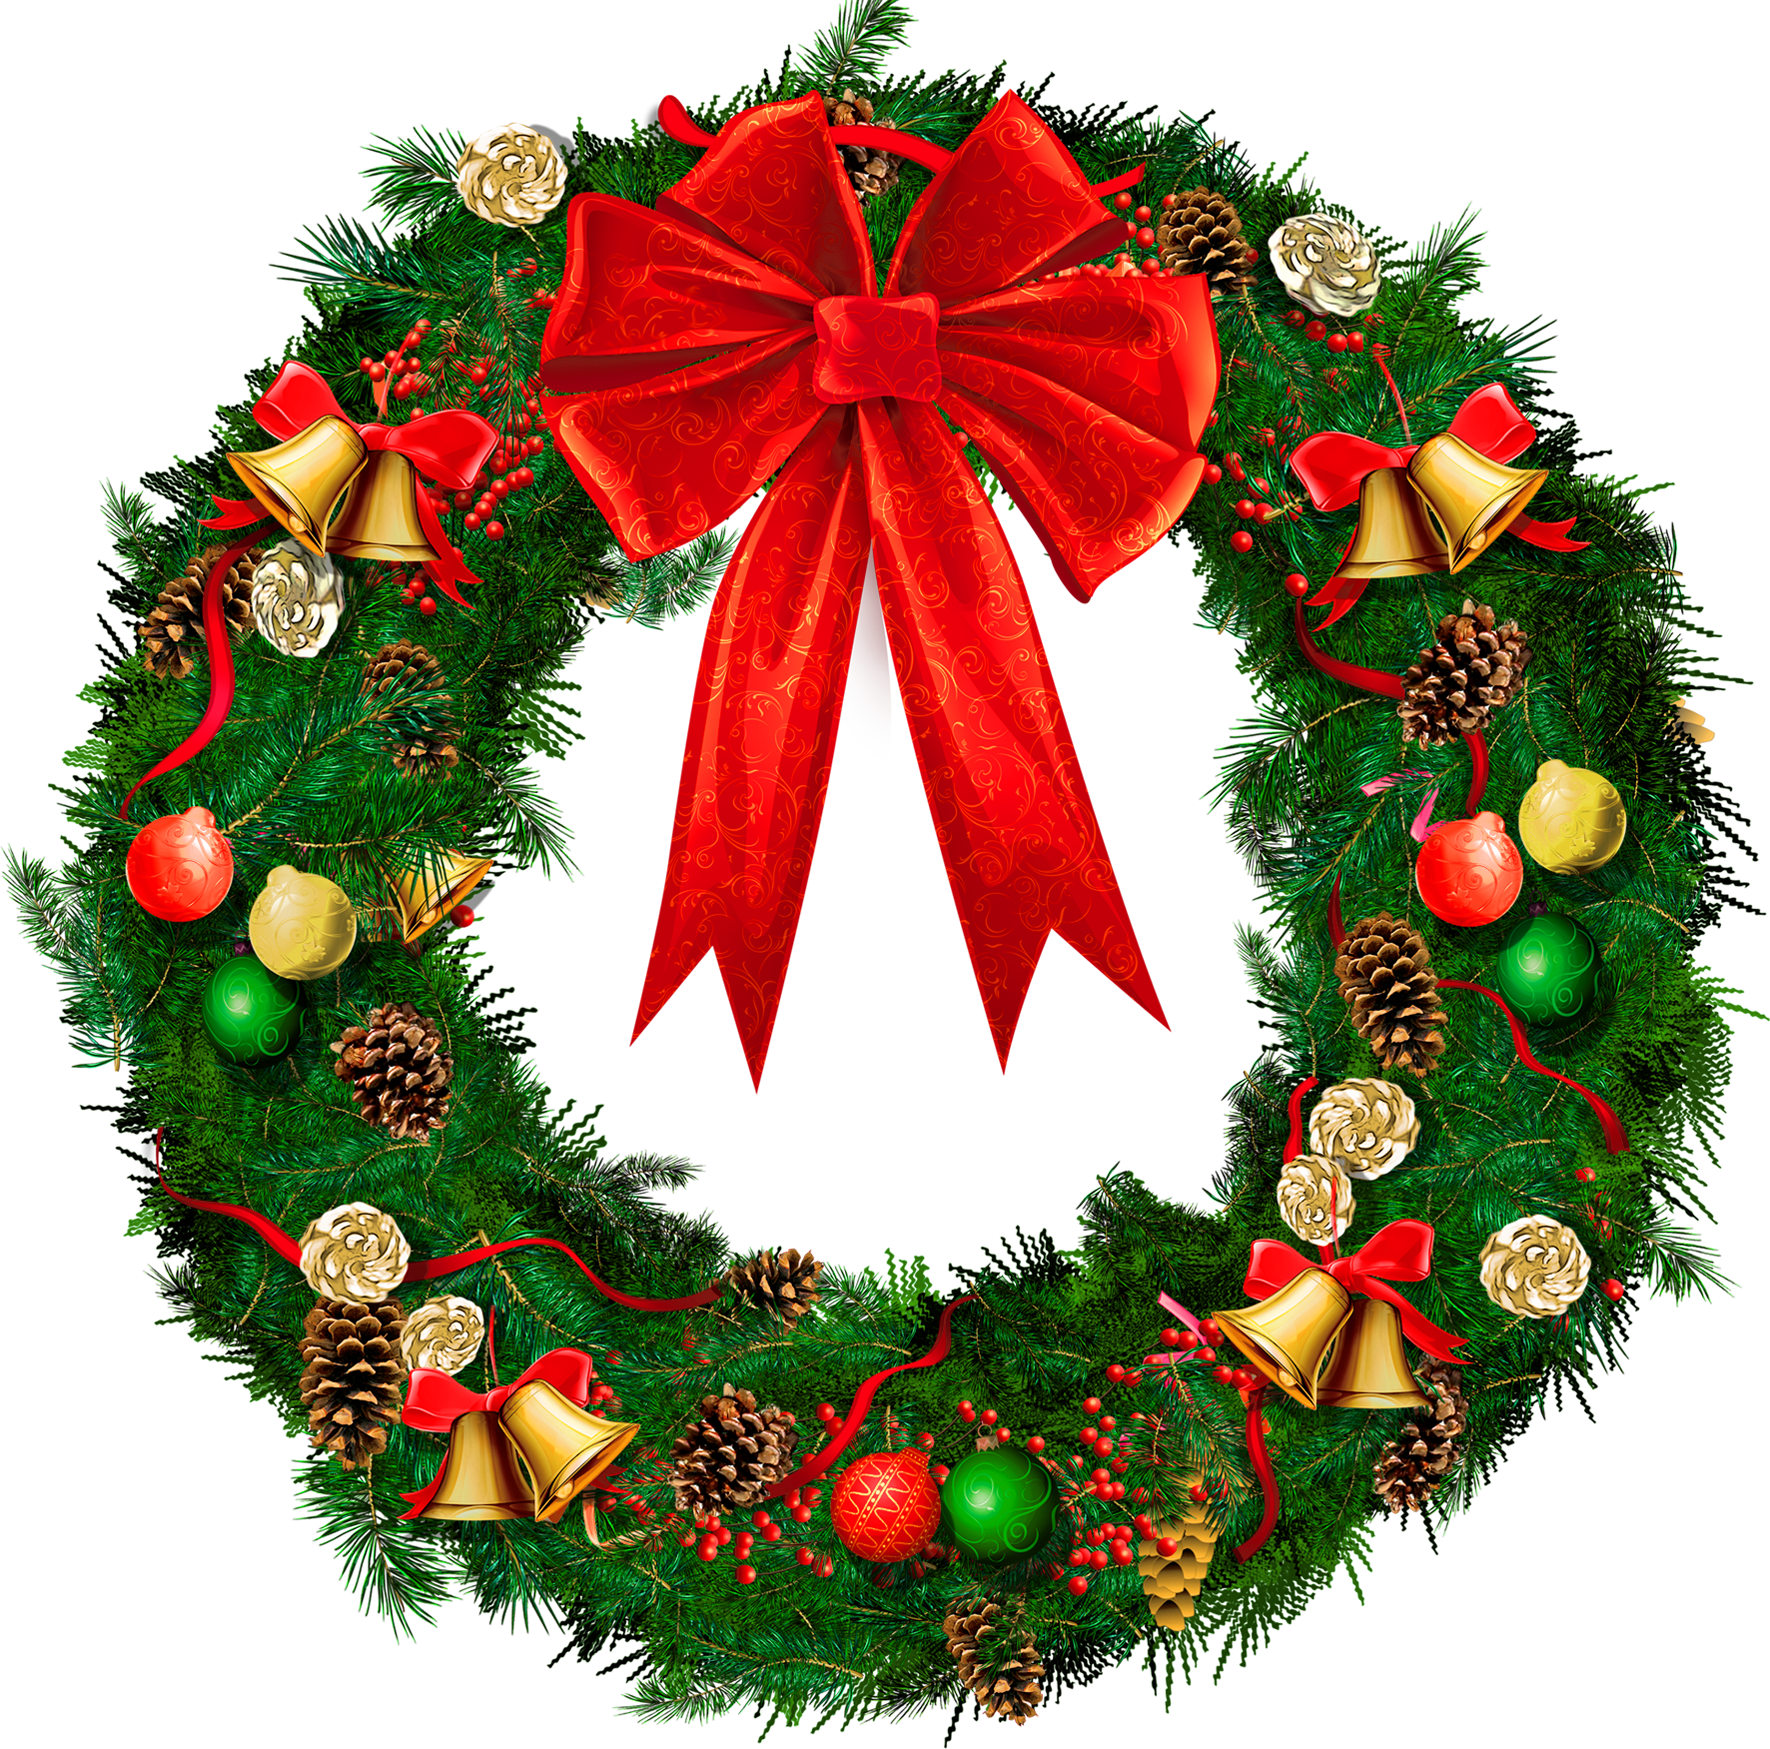 svg library library Wreath clipart transparent background. Christmas with red bow